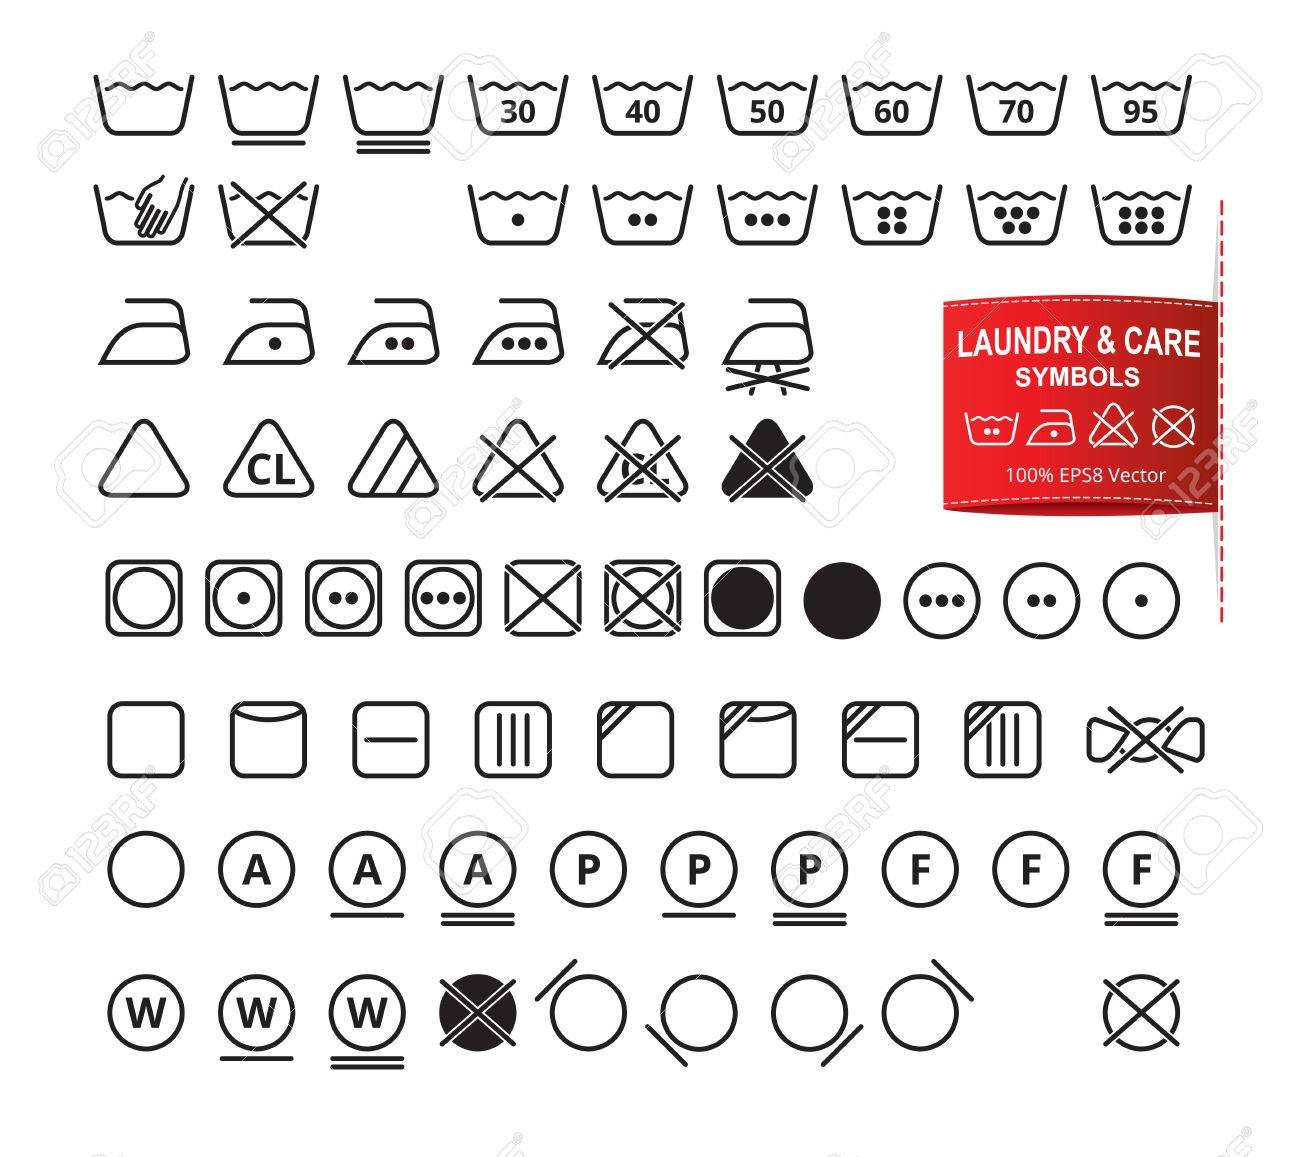 Icon set of laundry symbols in modern thin line flat design style icon set of laundry symbols in modern thin line flat design style clothing washing biocorpaavc Images